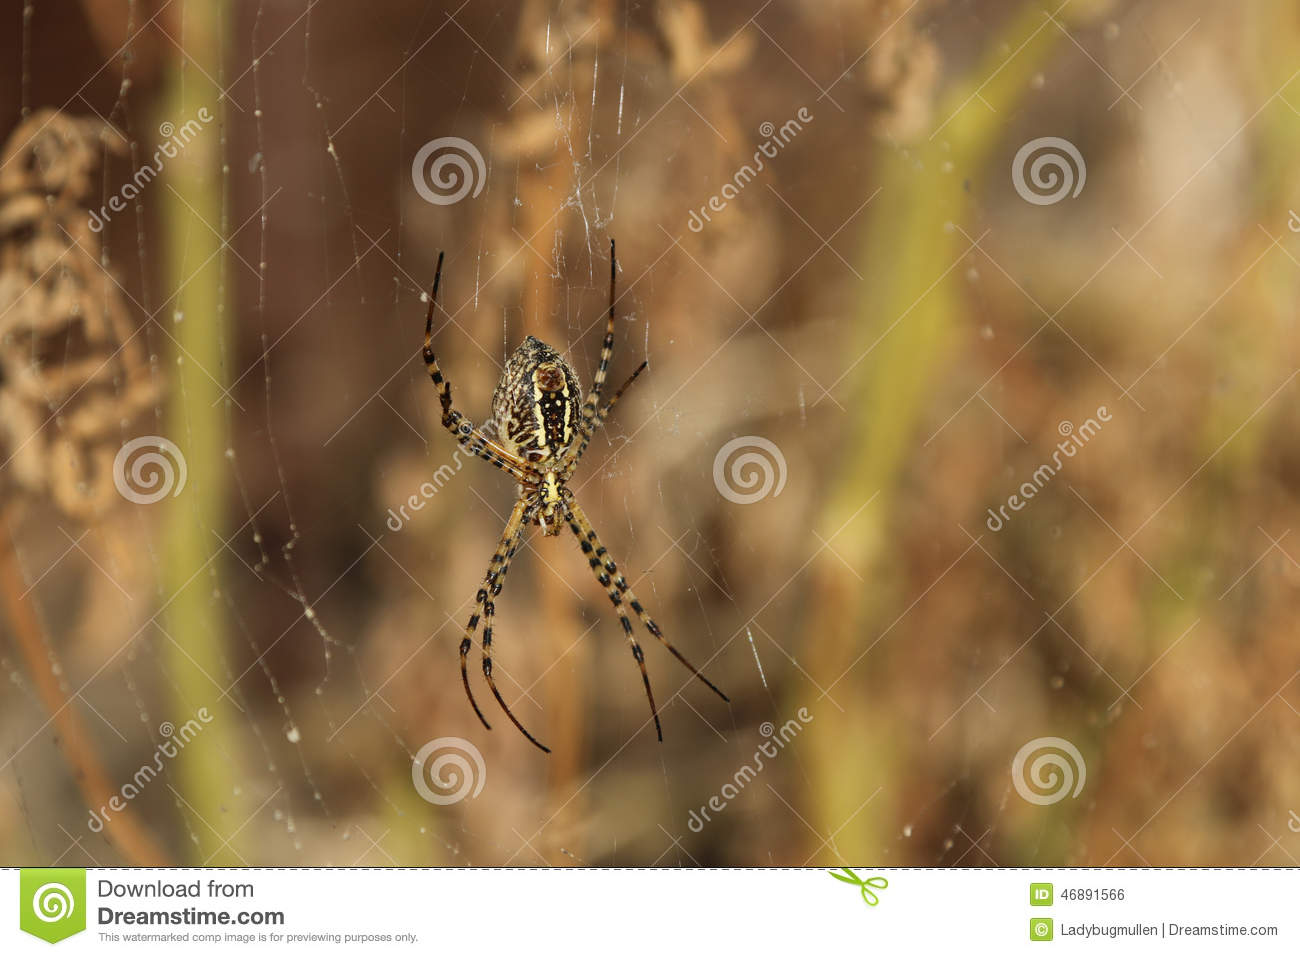 Spider stock photo. Image of large, legs, arachnoid, brown - 46891566